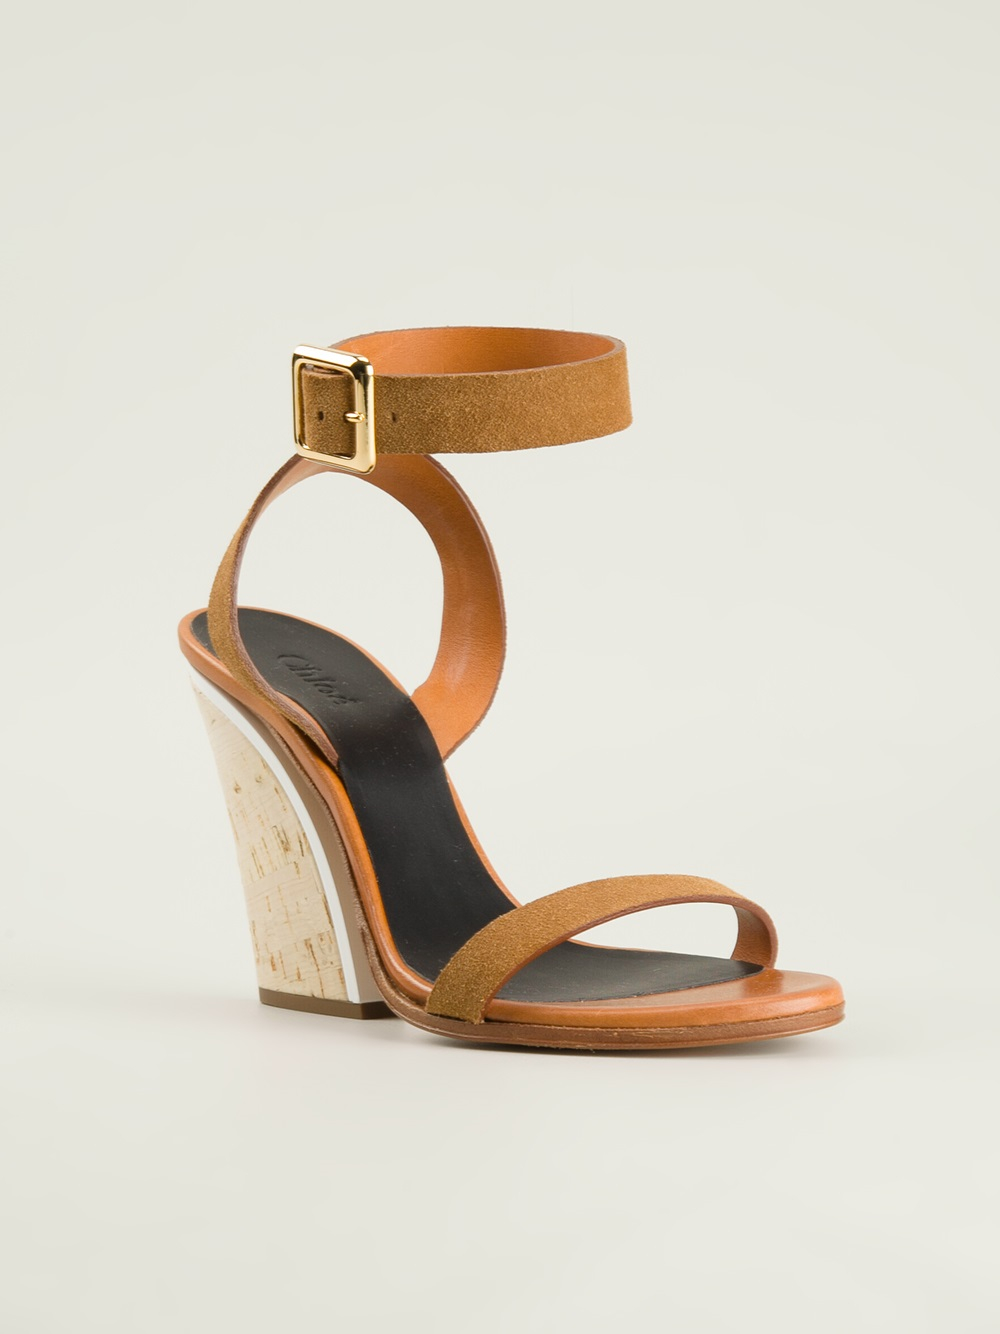 Chloé Chunky Heel Sandals in Natural | Lyst